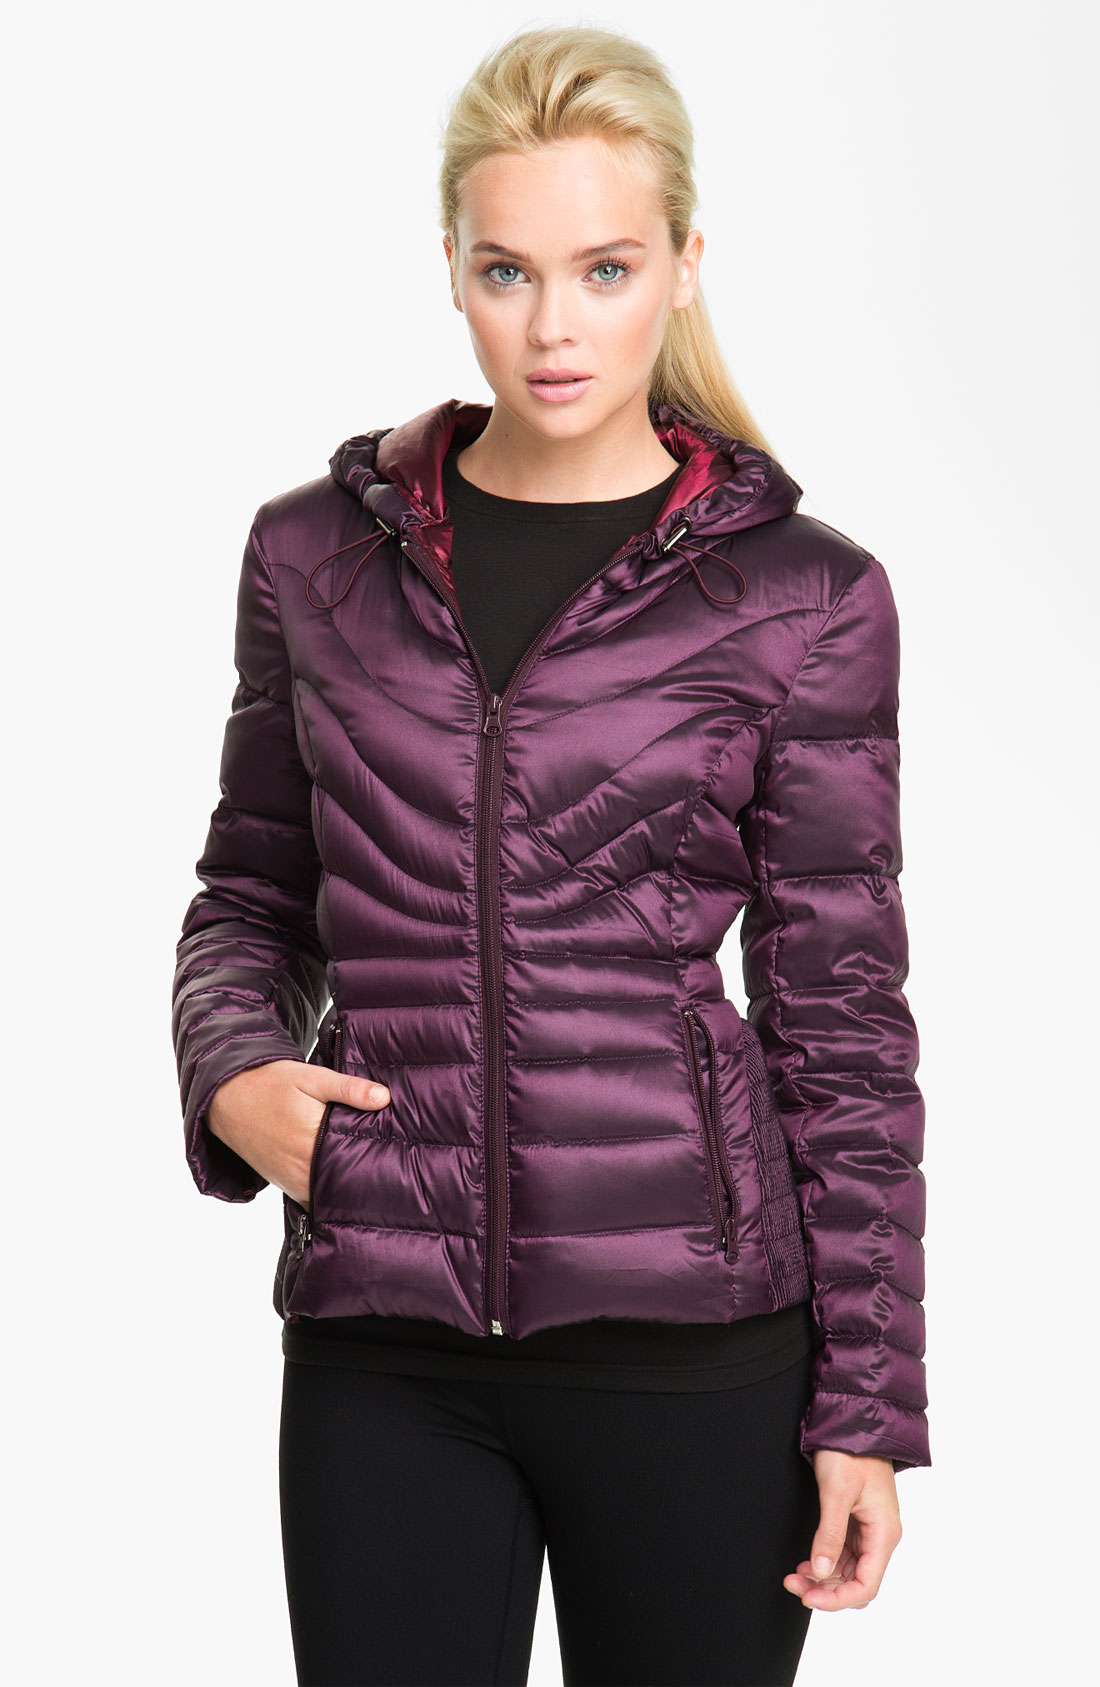 North Face Packable Down Jacket